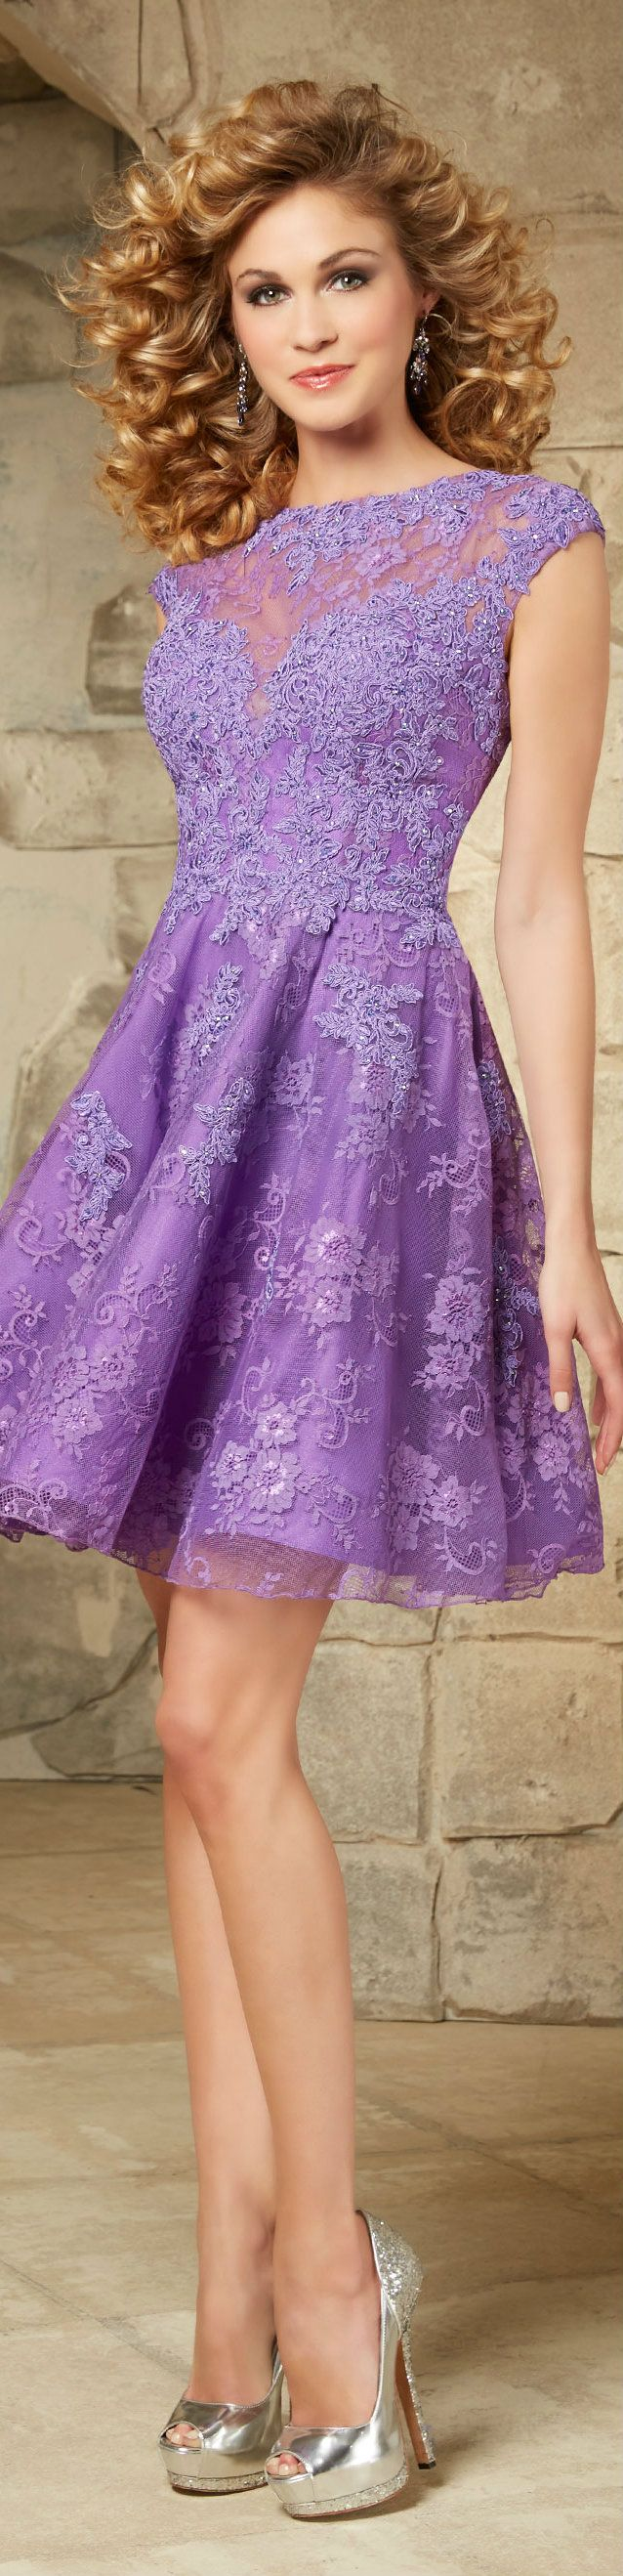 25+ best ideas about Purple lace dresses on Pinterest ...